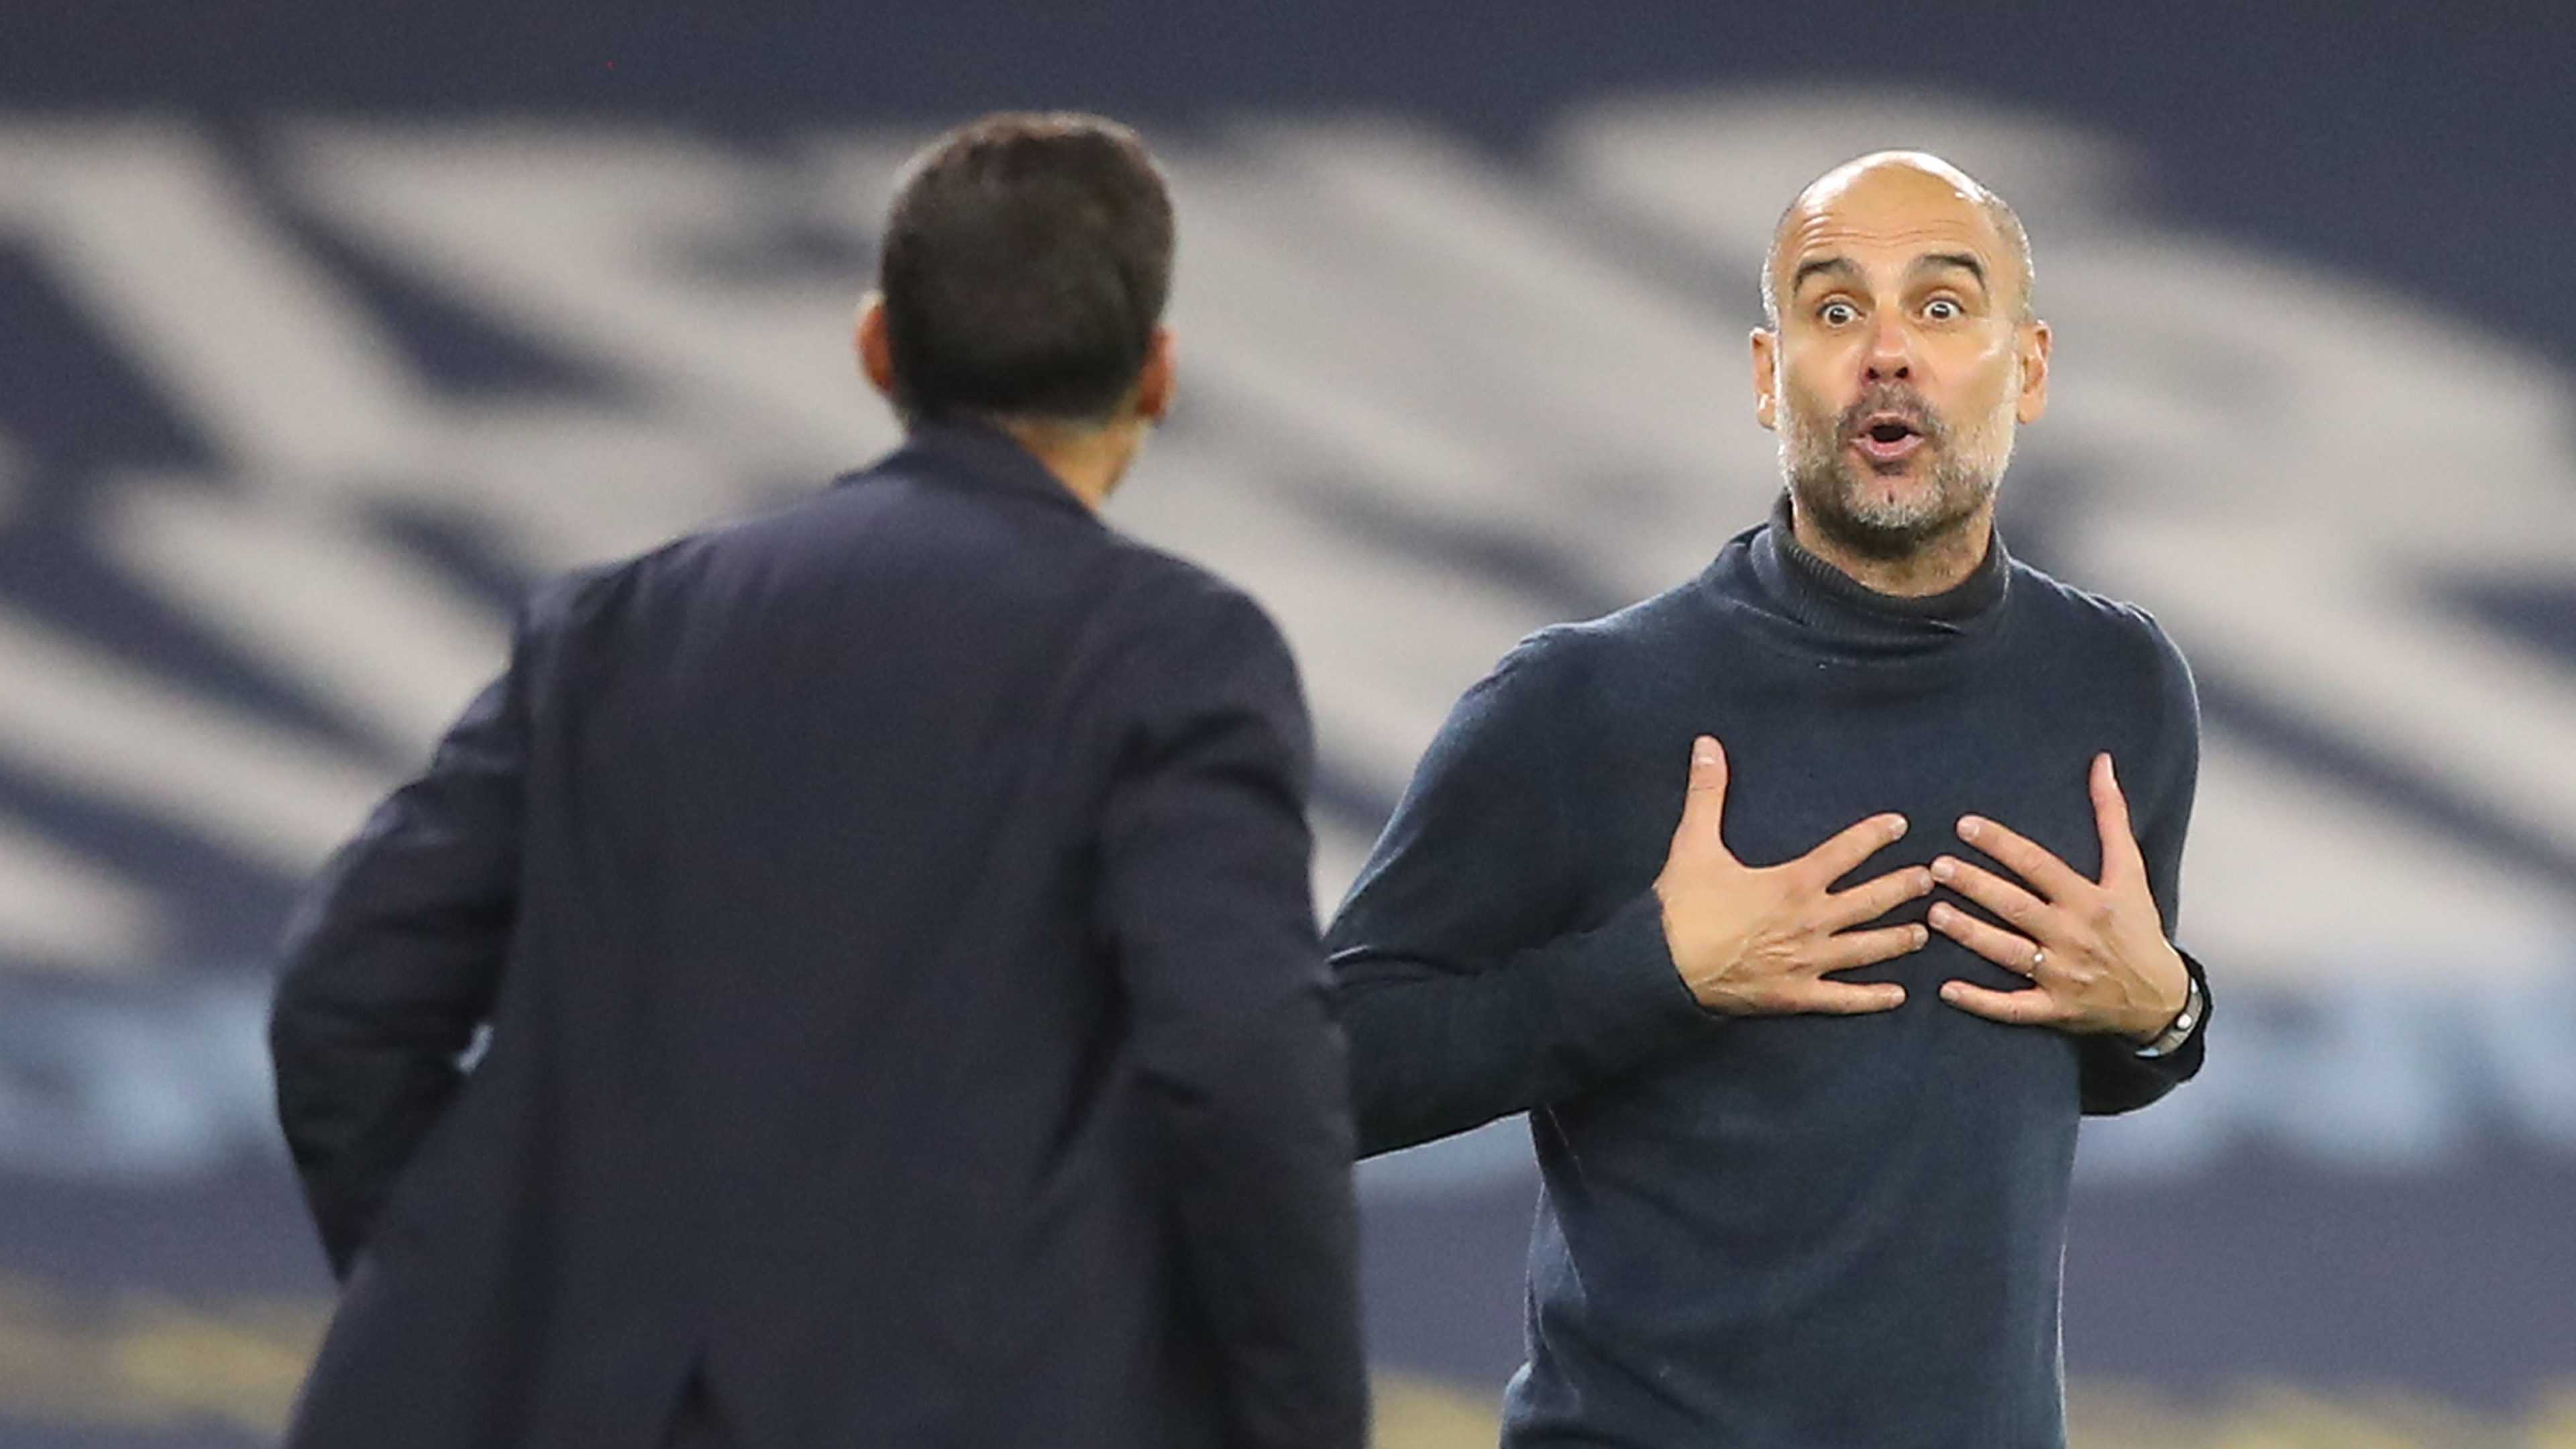 'Maybe he's right!' - Man City boss Guardiola responds to Porto accusations of being 'extremely unpleasant'